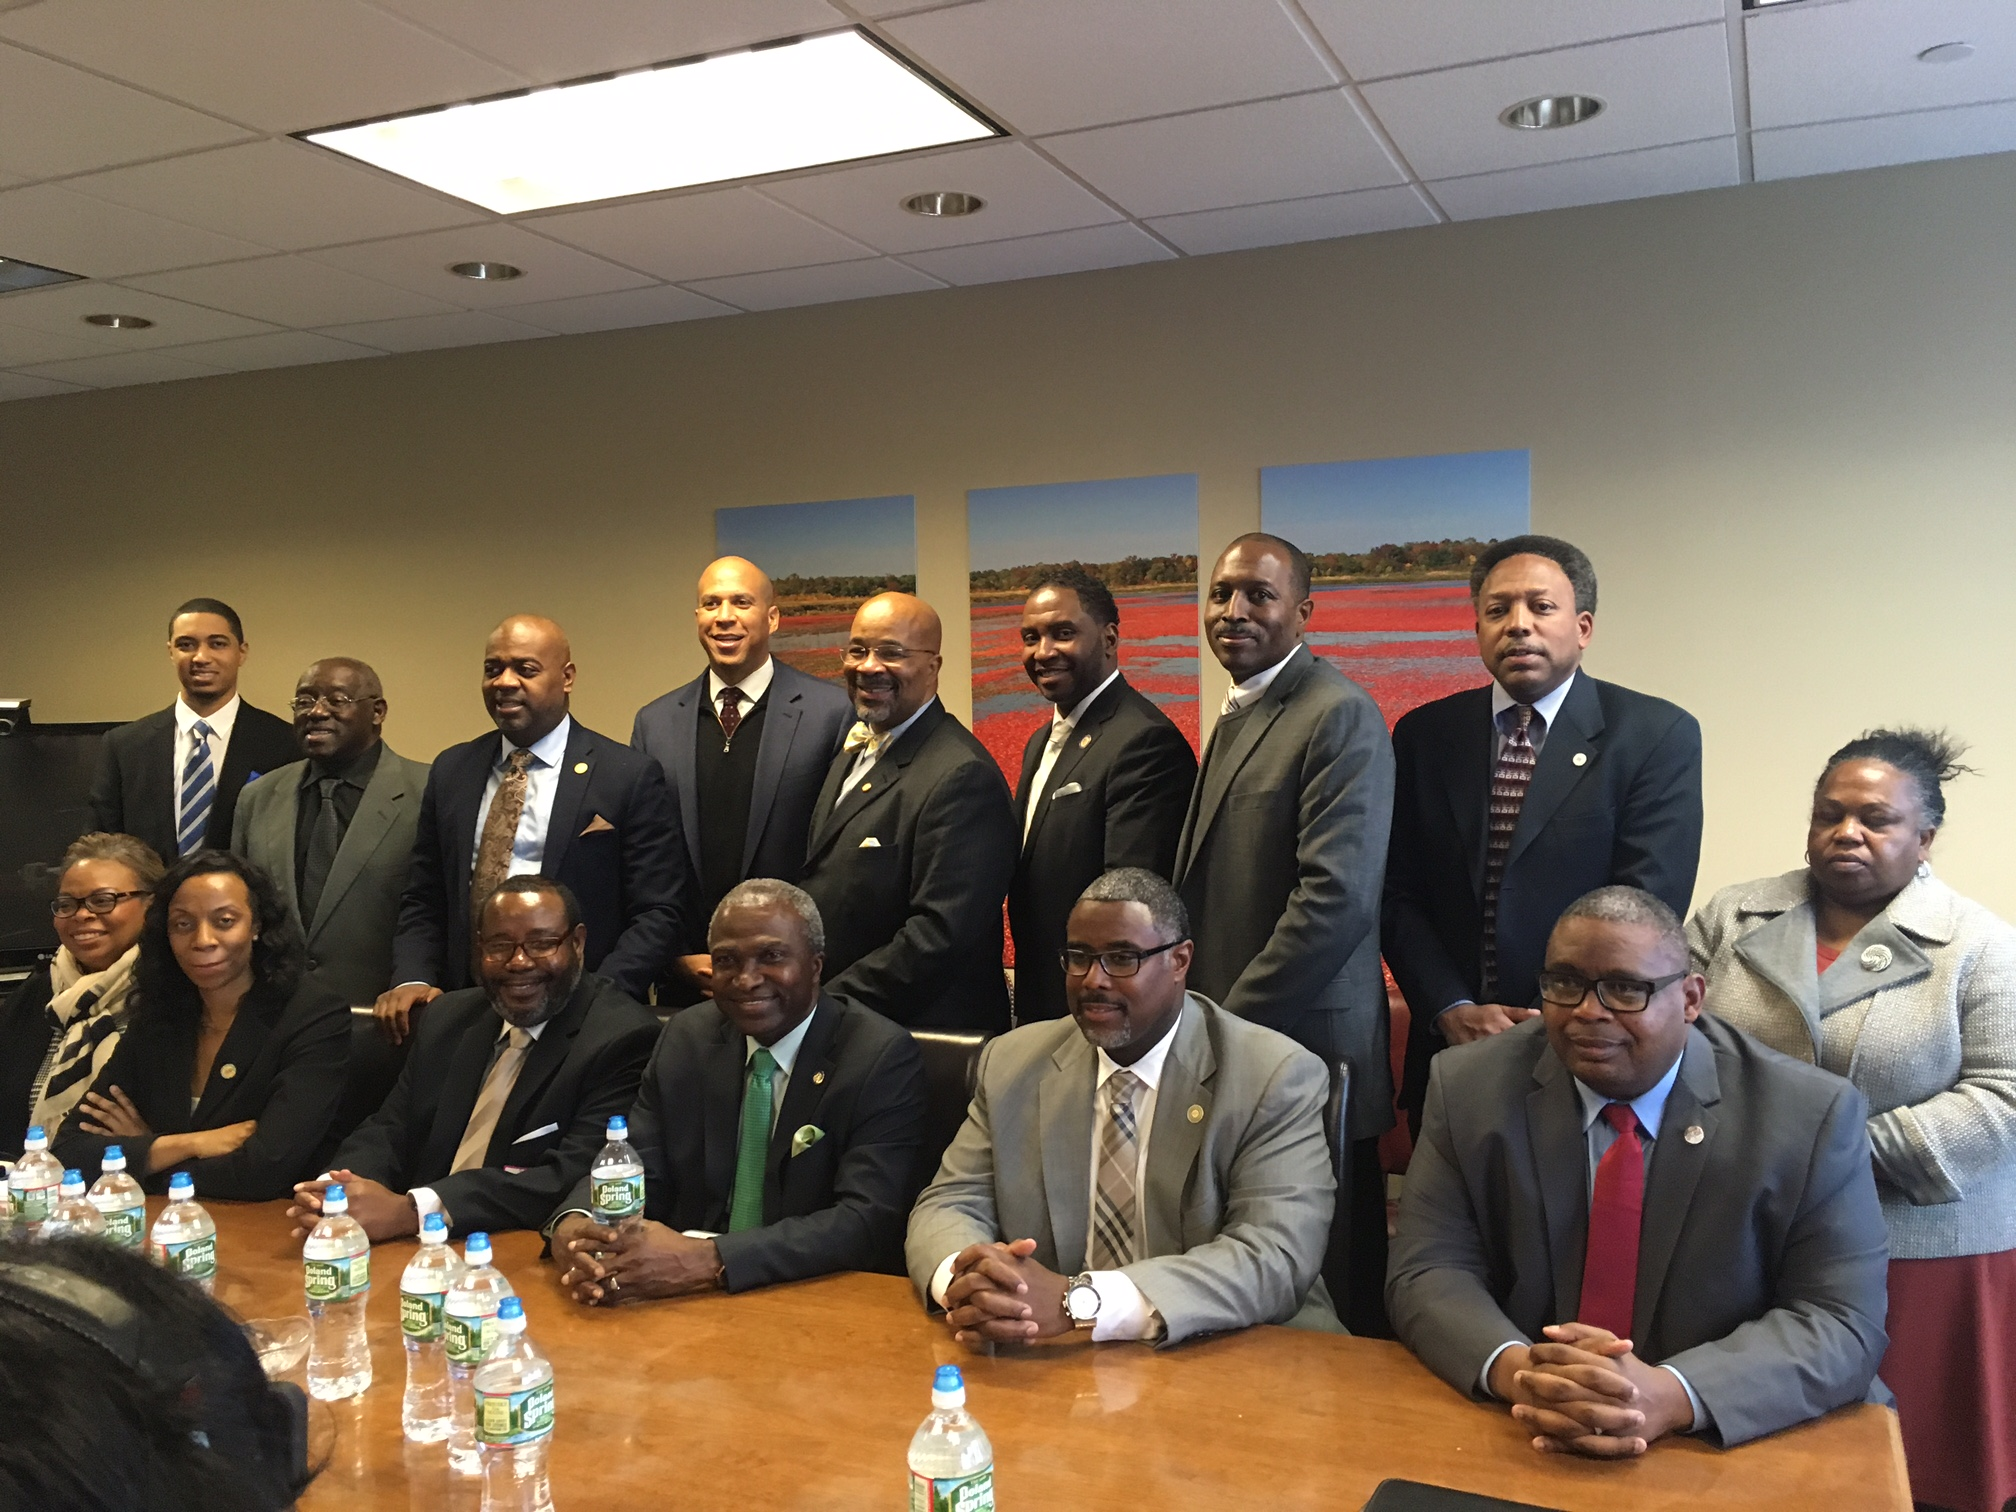 Booker held a discussion with members of the New Jersey Black Mayors Alliance for Social Justice.